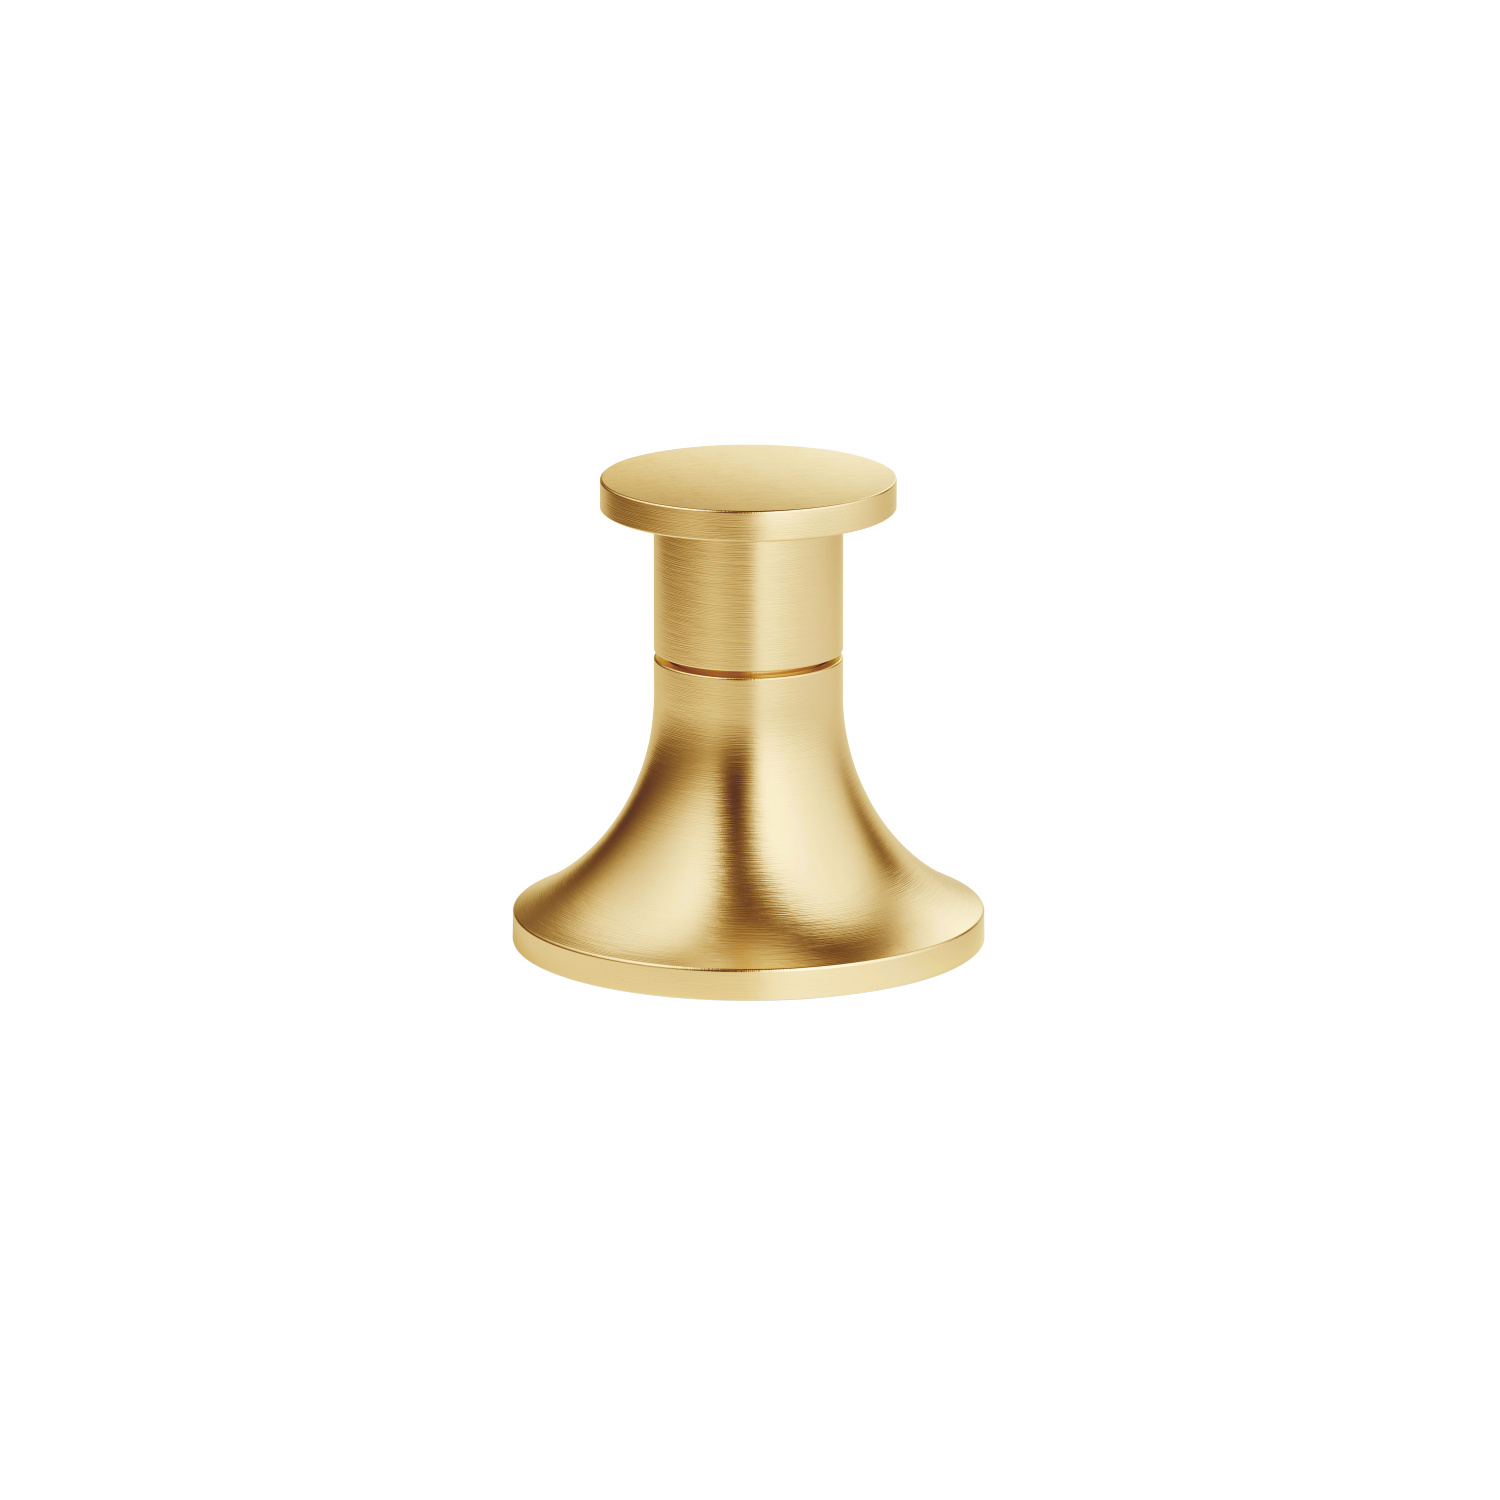 Two-way diverter for bath rim or tile edge installation - brushed Durabrass